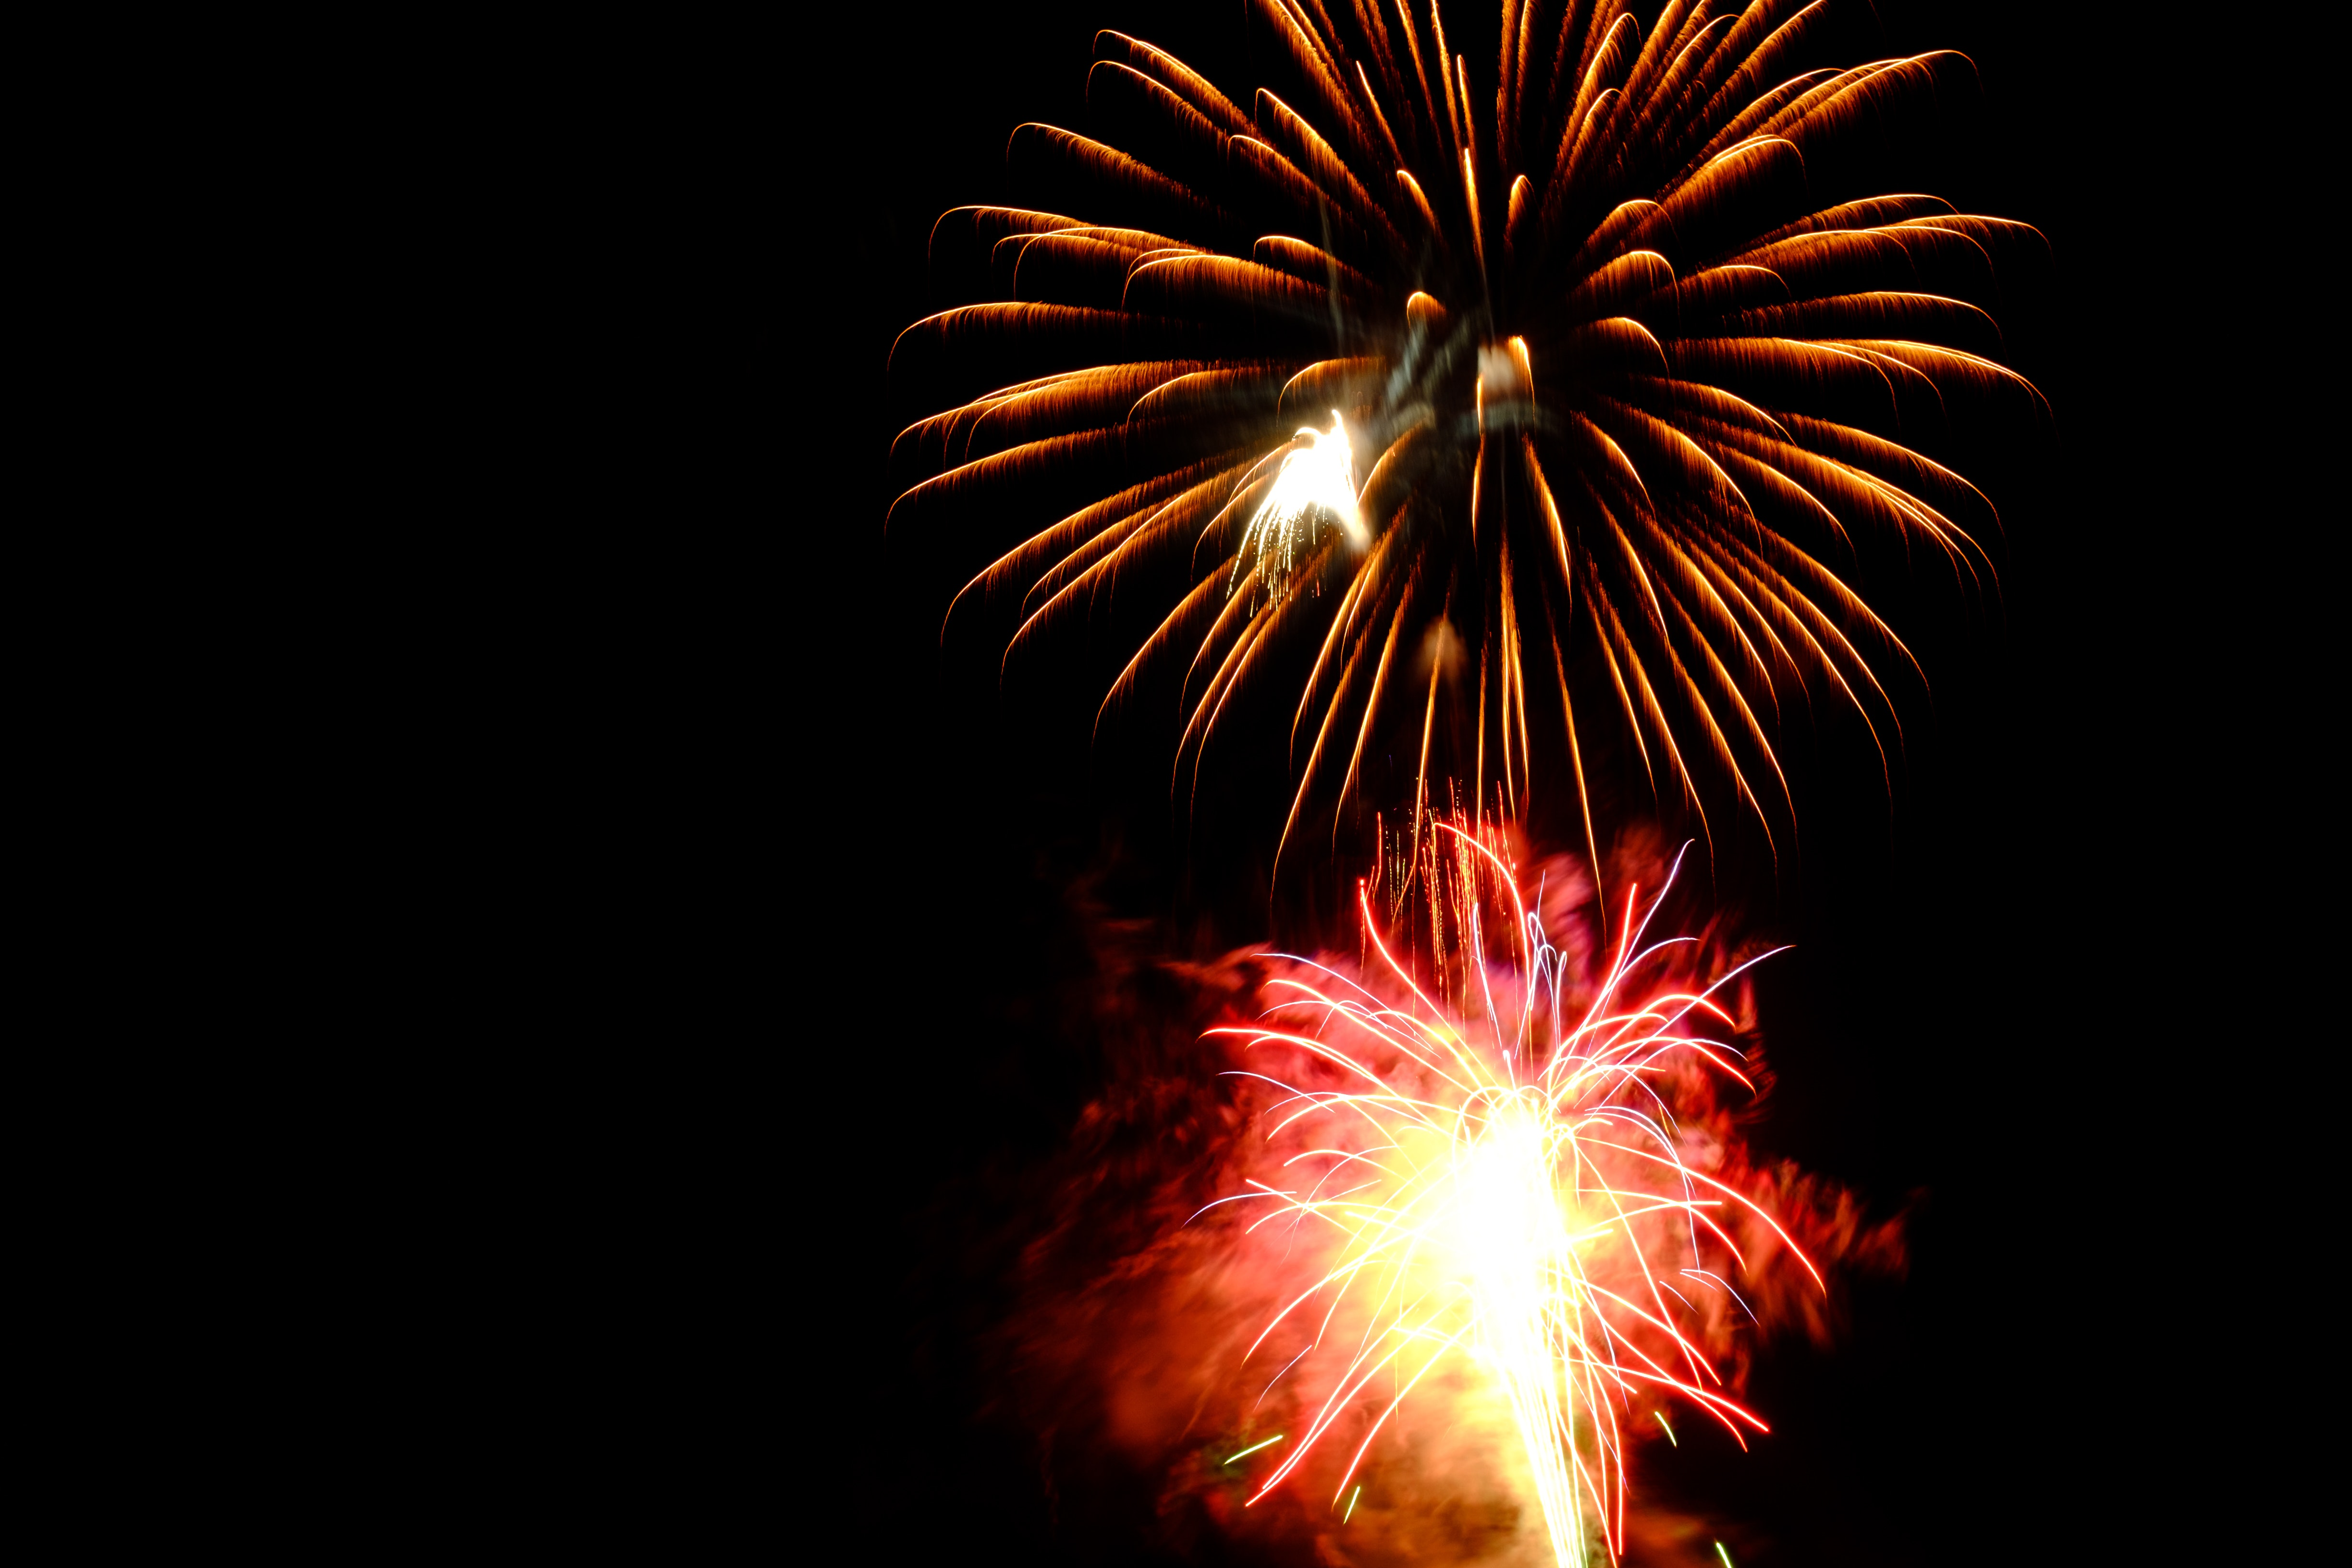 Red and Brown Fireworks Display Photo, Beautiful, Flash, Sparks, Sky, HQ Photo